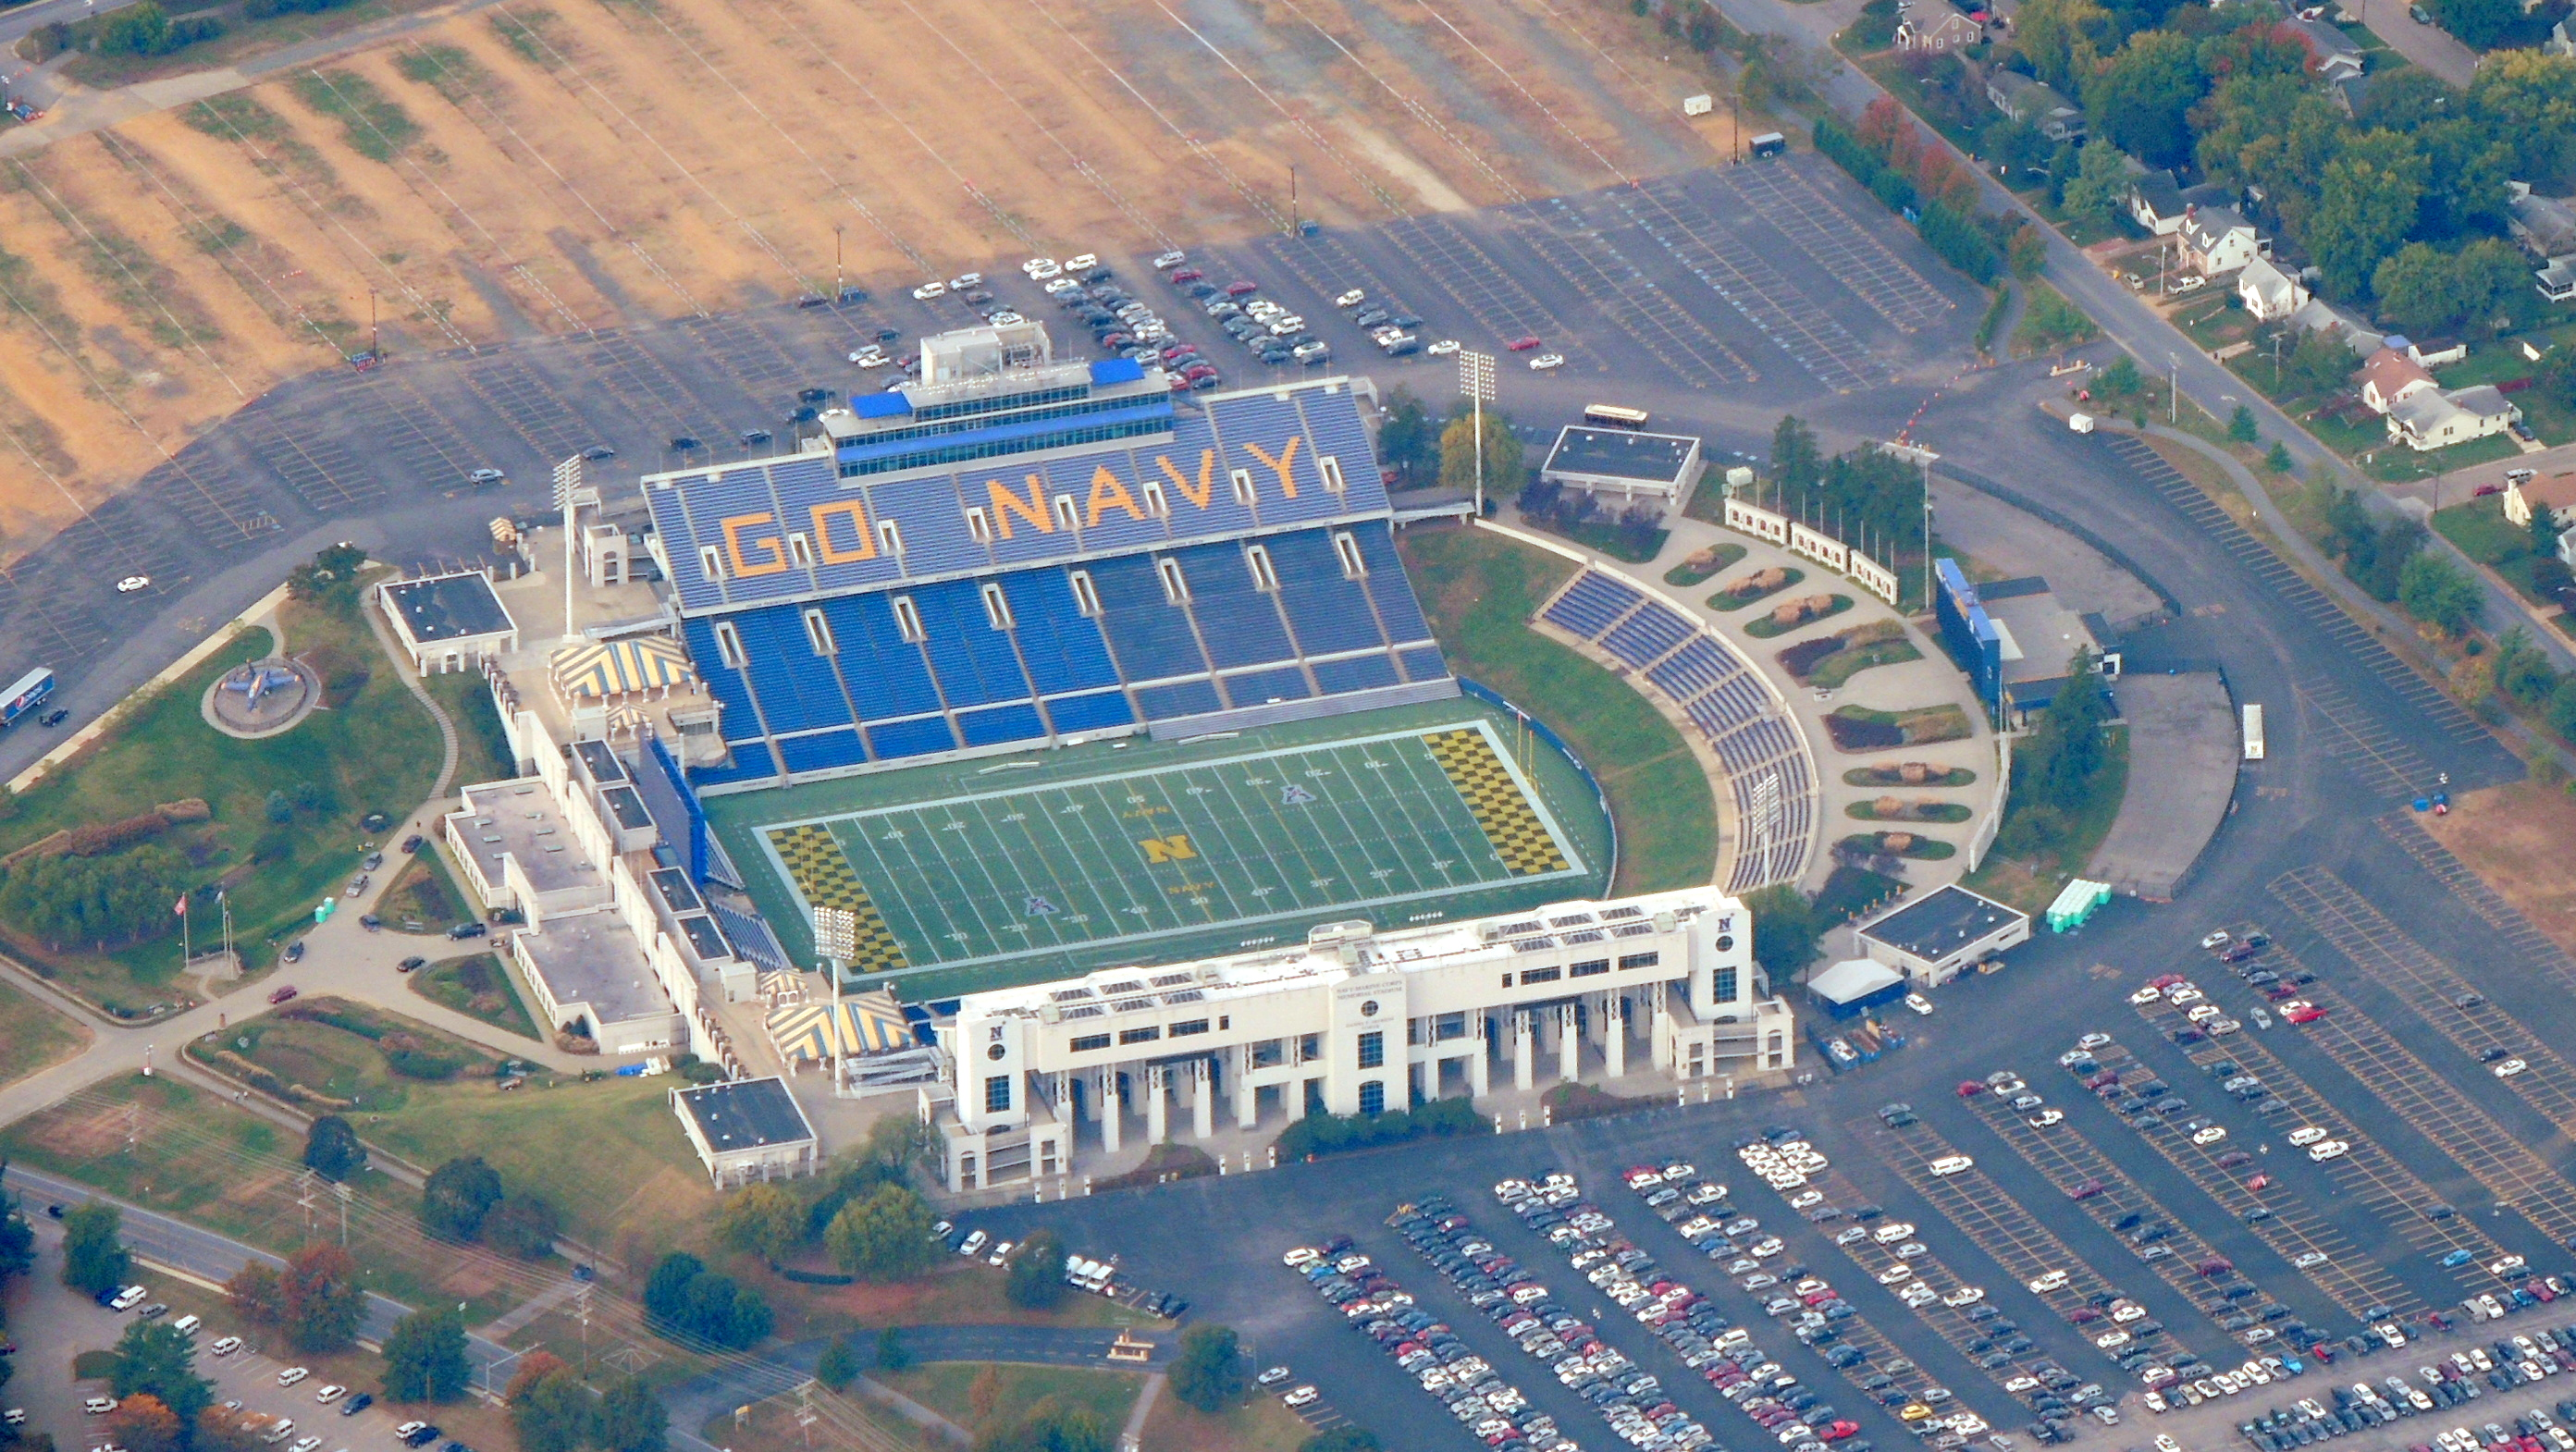 Football Stadium at the US Naval Academy